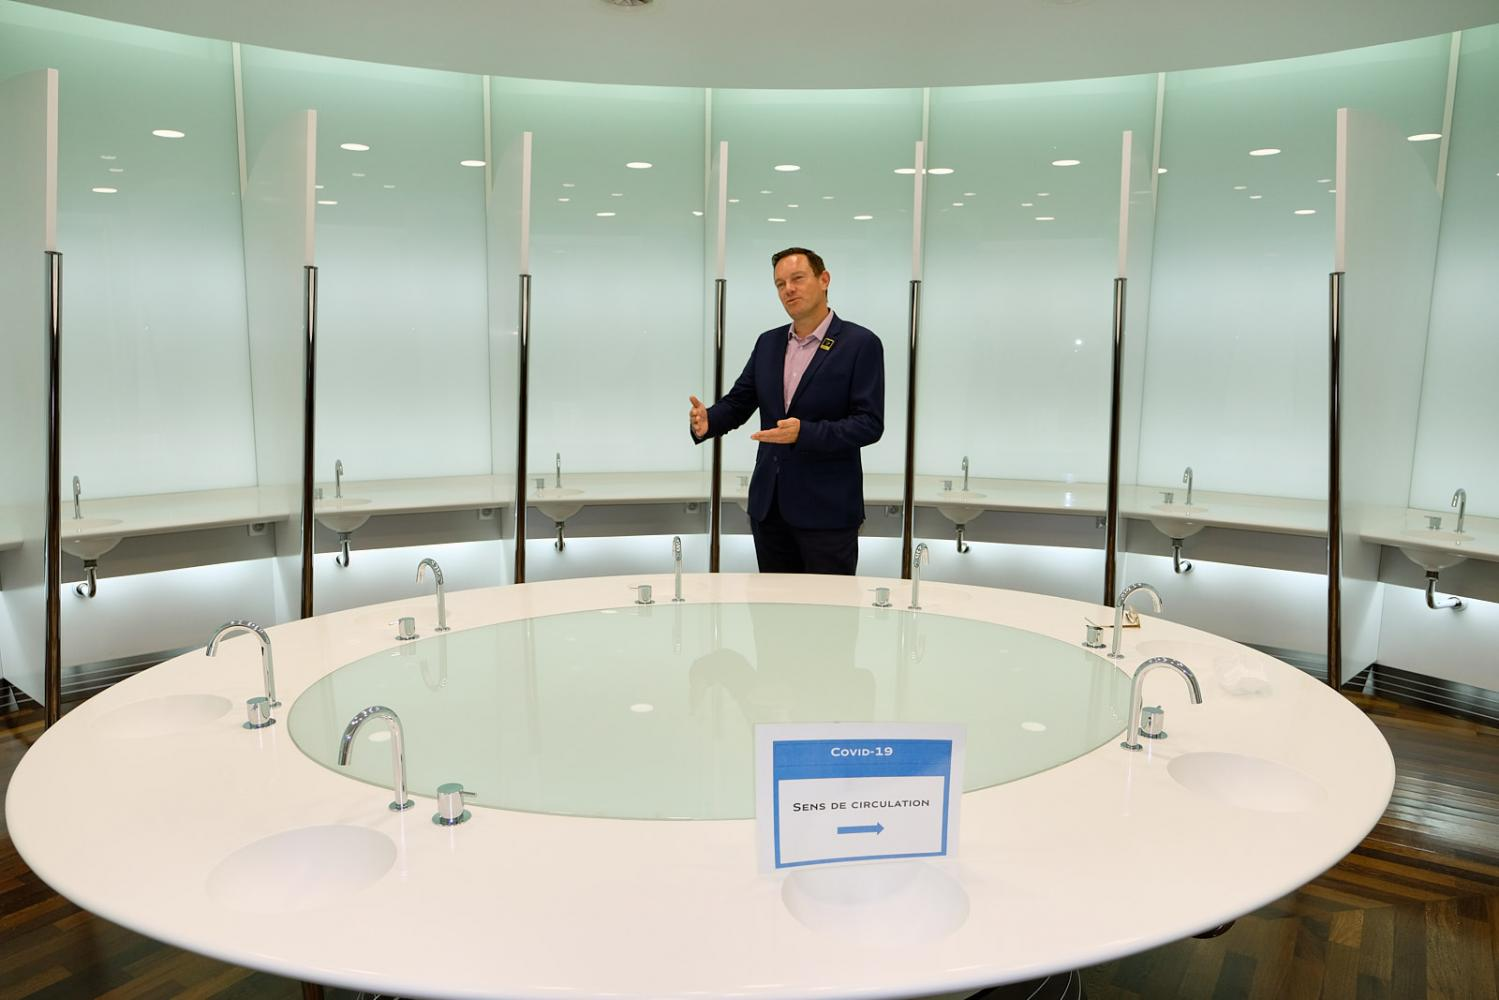 Thibaut le Mailloux, communication director of the 'Comité Interprofessionnel Du Vin De Champagne', stands in the testing room where champagne is evaluated and rated in the building of the organisation in Epernay.